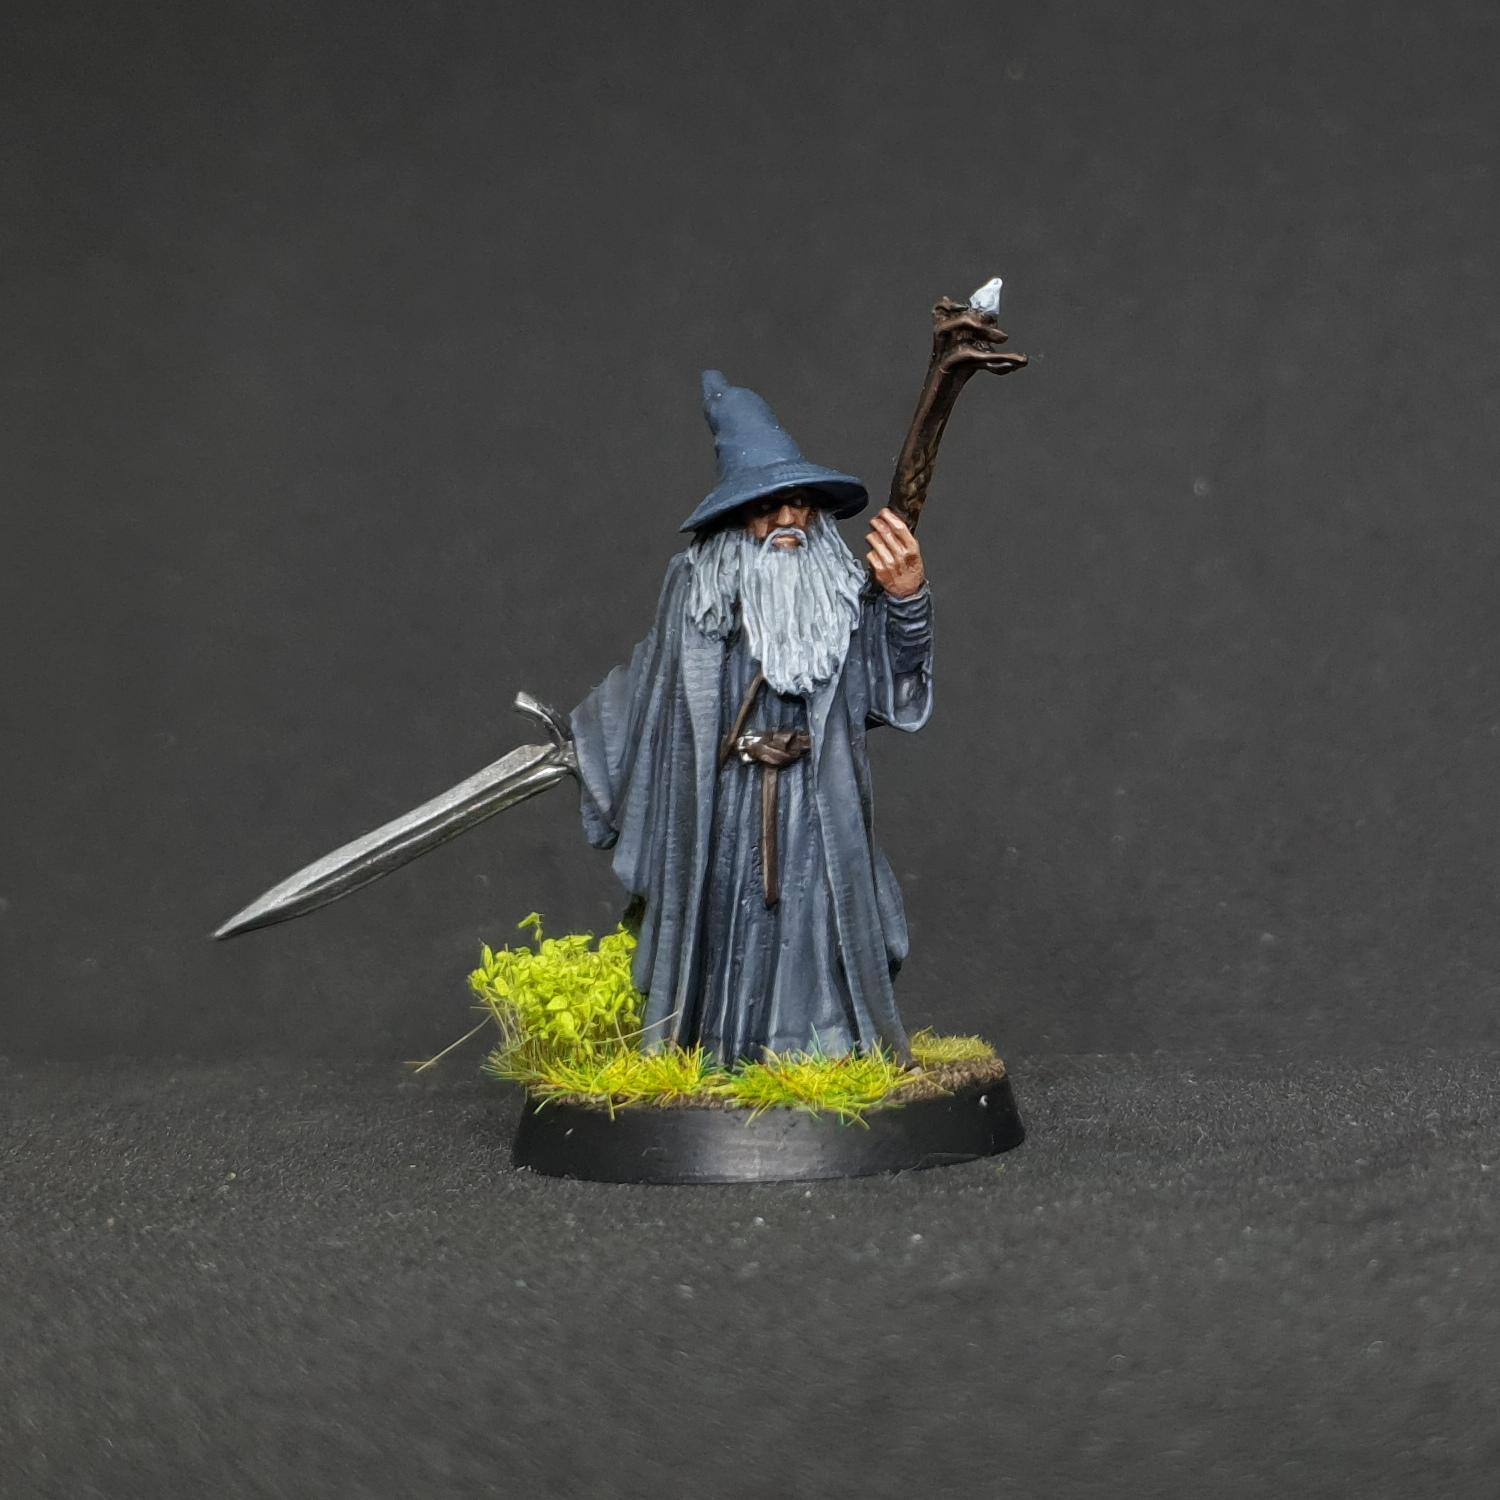 Battle, Earth, Fellowship, Game, Gandalf The Grey, Istari, Lord, Middle, Of, Rings, Strategy, The, Wizard